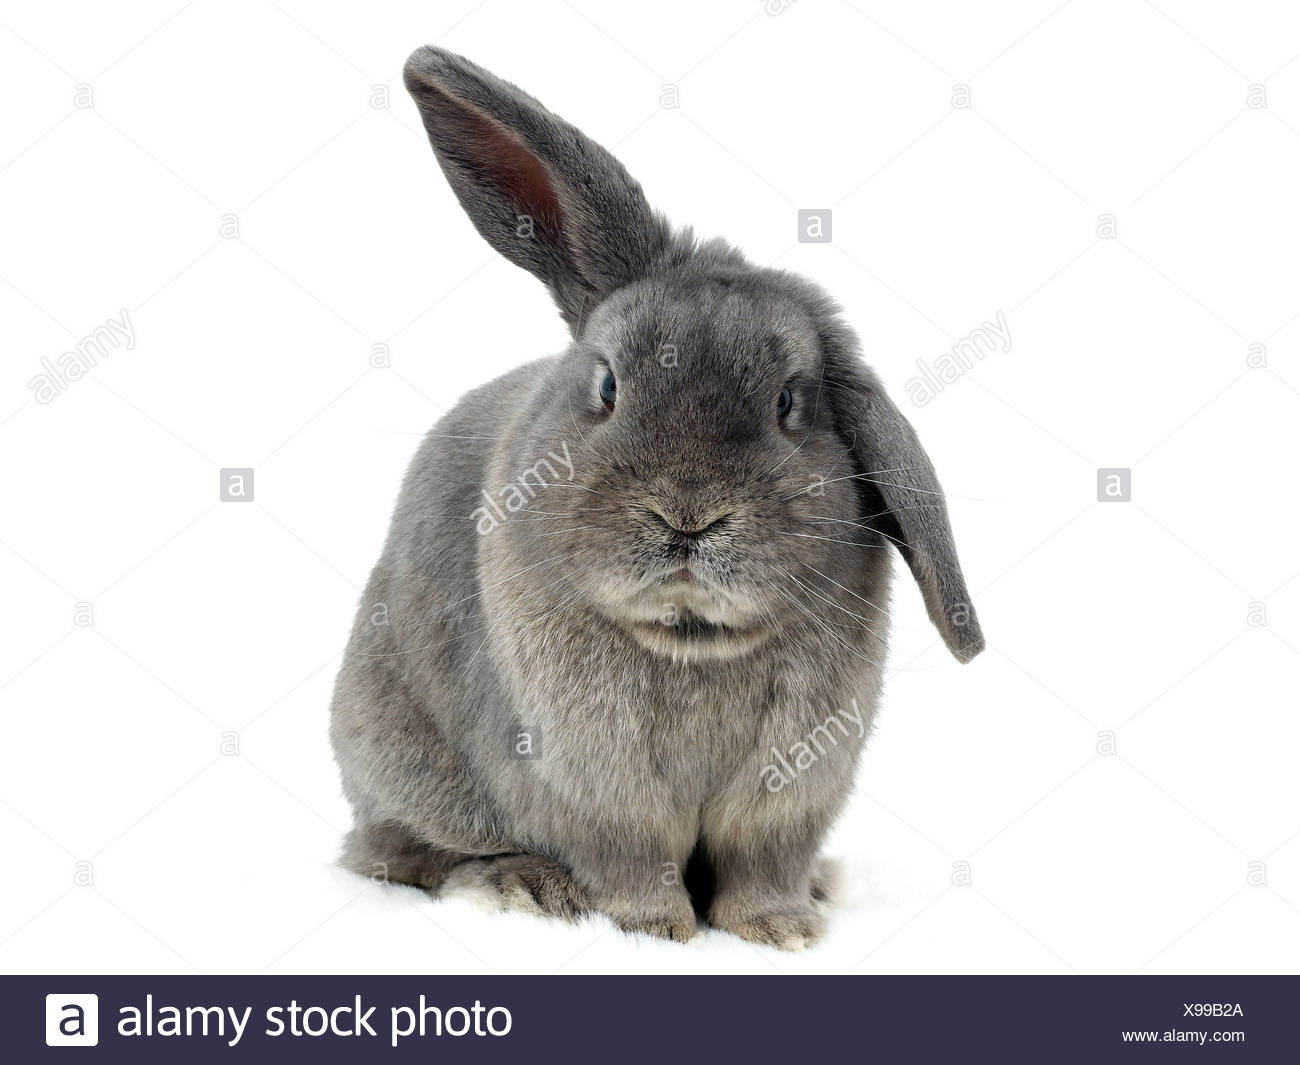 A sad looking pet rabbit with a damaged ear. - Stock Image